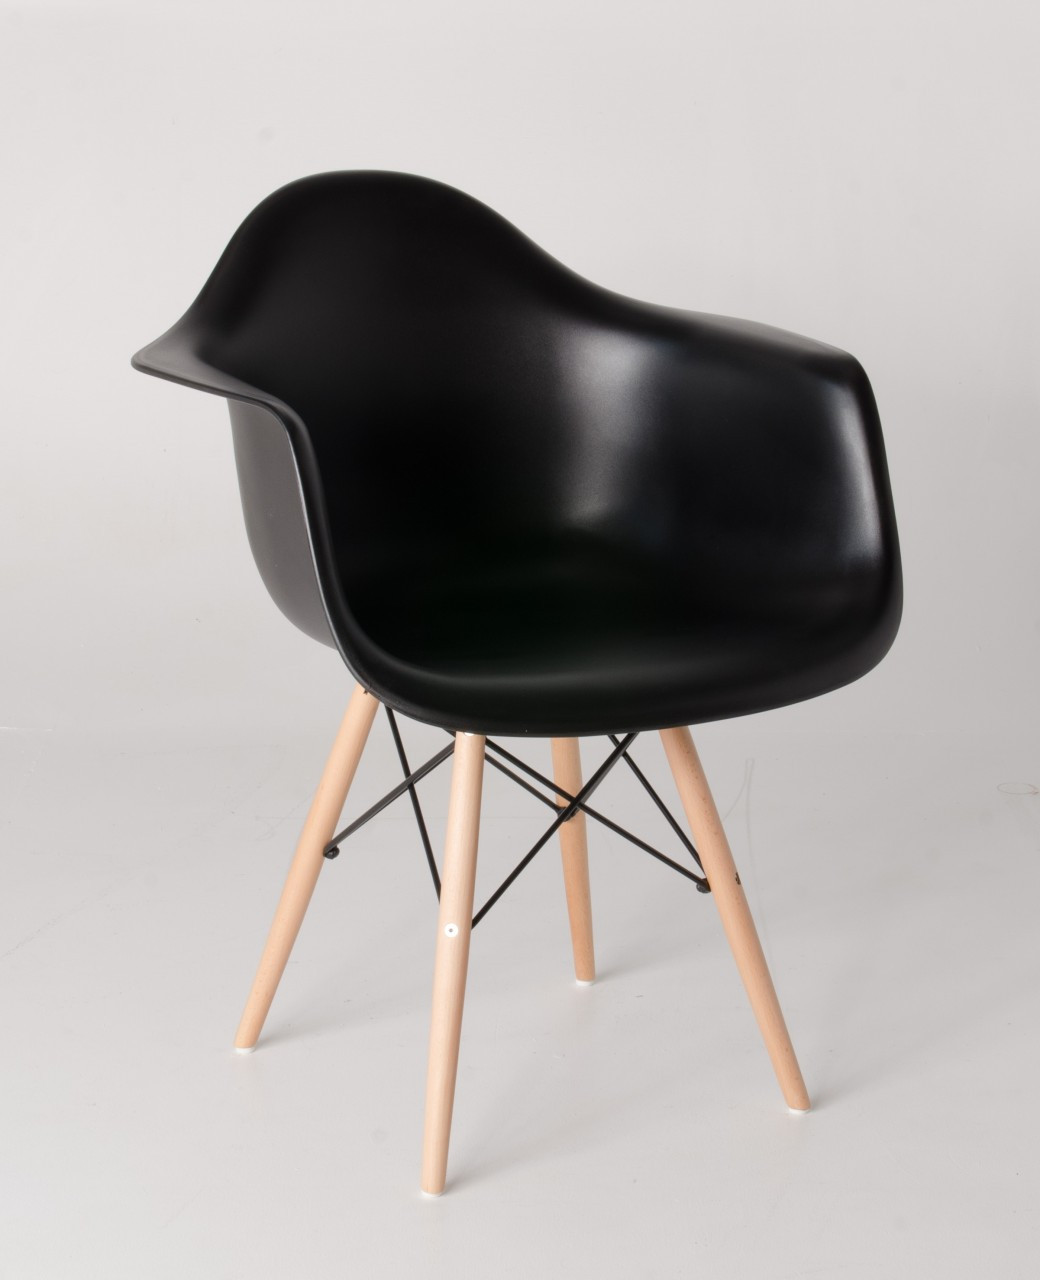 Replica eames daw eiffel chair replica daw chair black for Eames plastic armchair daw replica